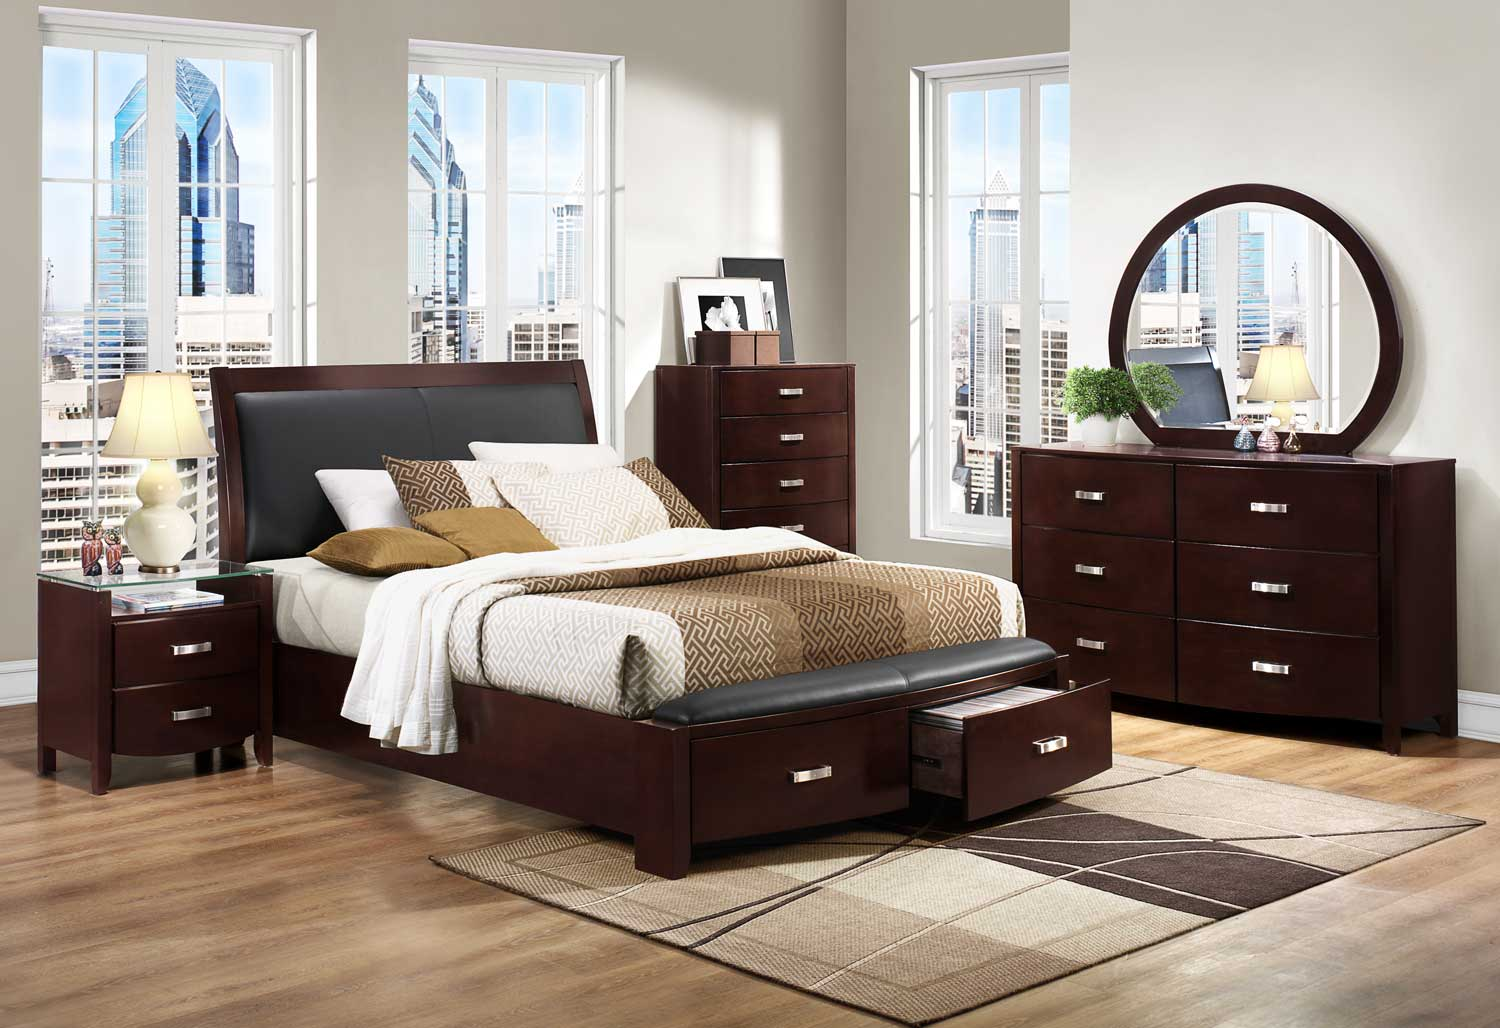 Homelegance lyric platform bedroom set dark espresso for Bed and bedroom furniture sets